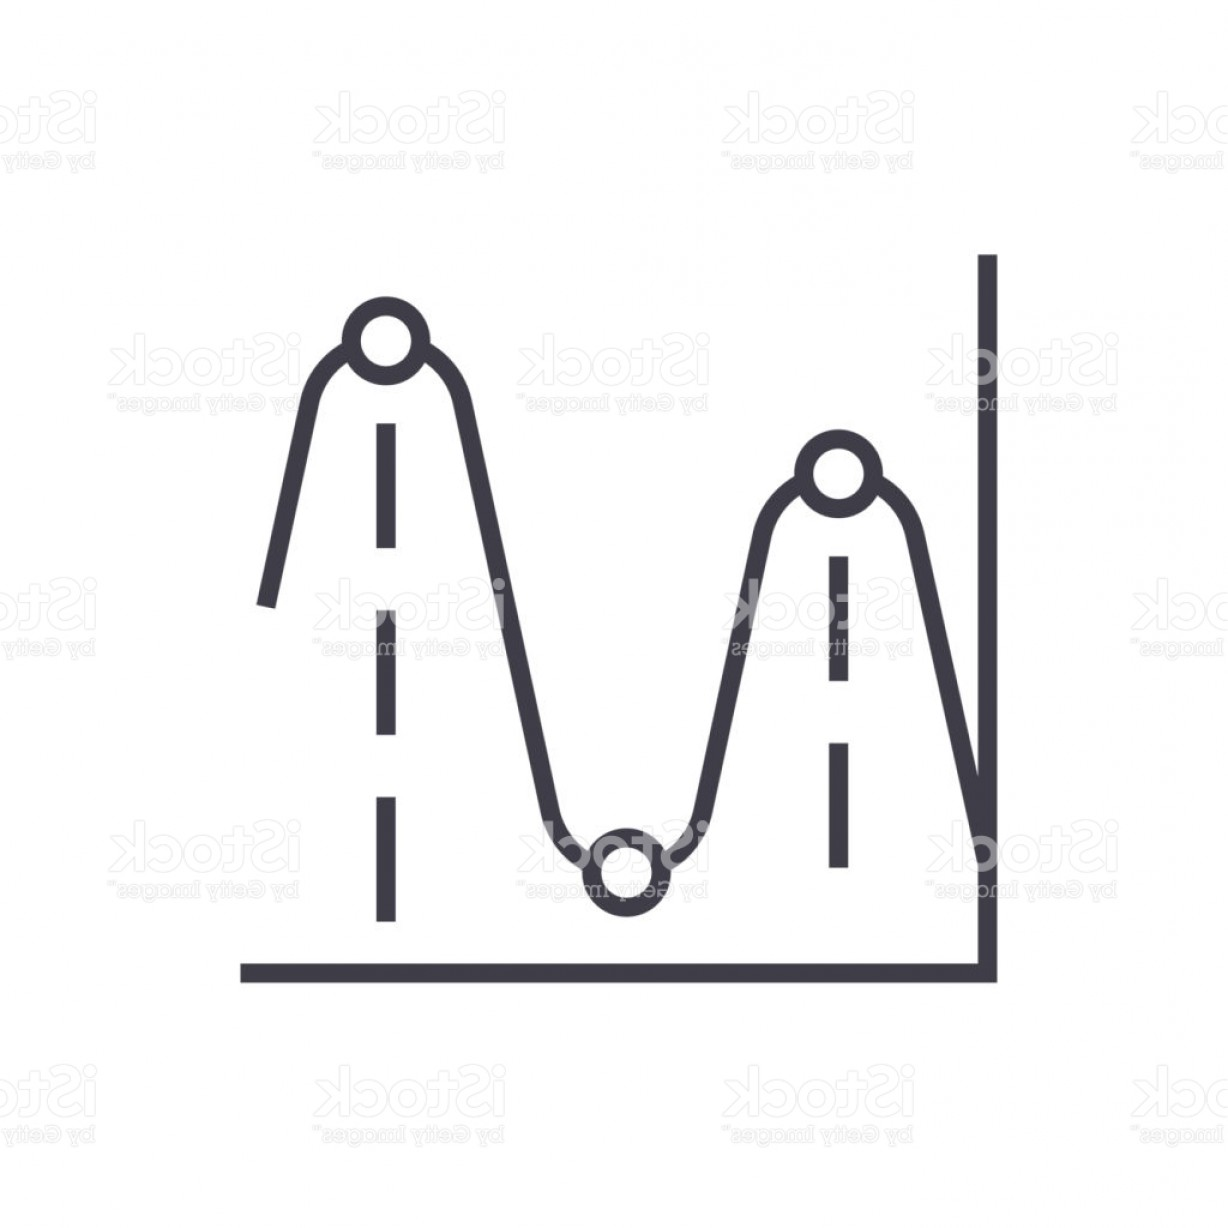 Frequency Icon Vector: Line Charts Frequency Graphs Vector Line Icon Sign Illustration On Background Gm